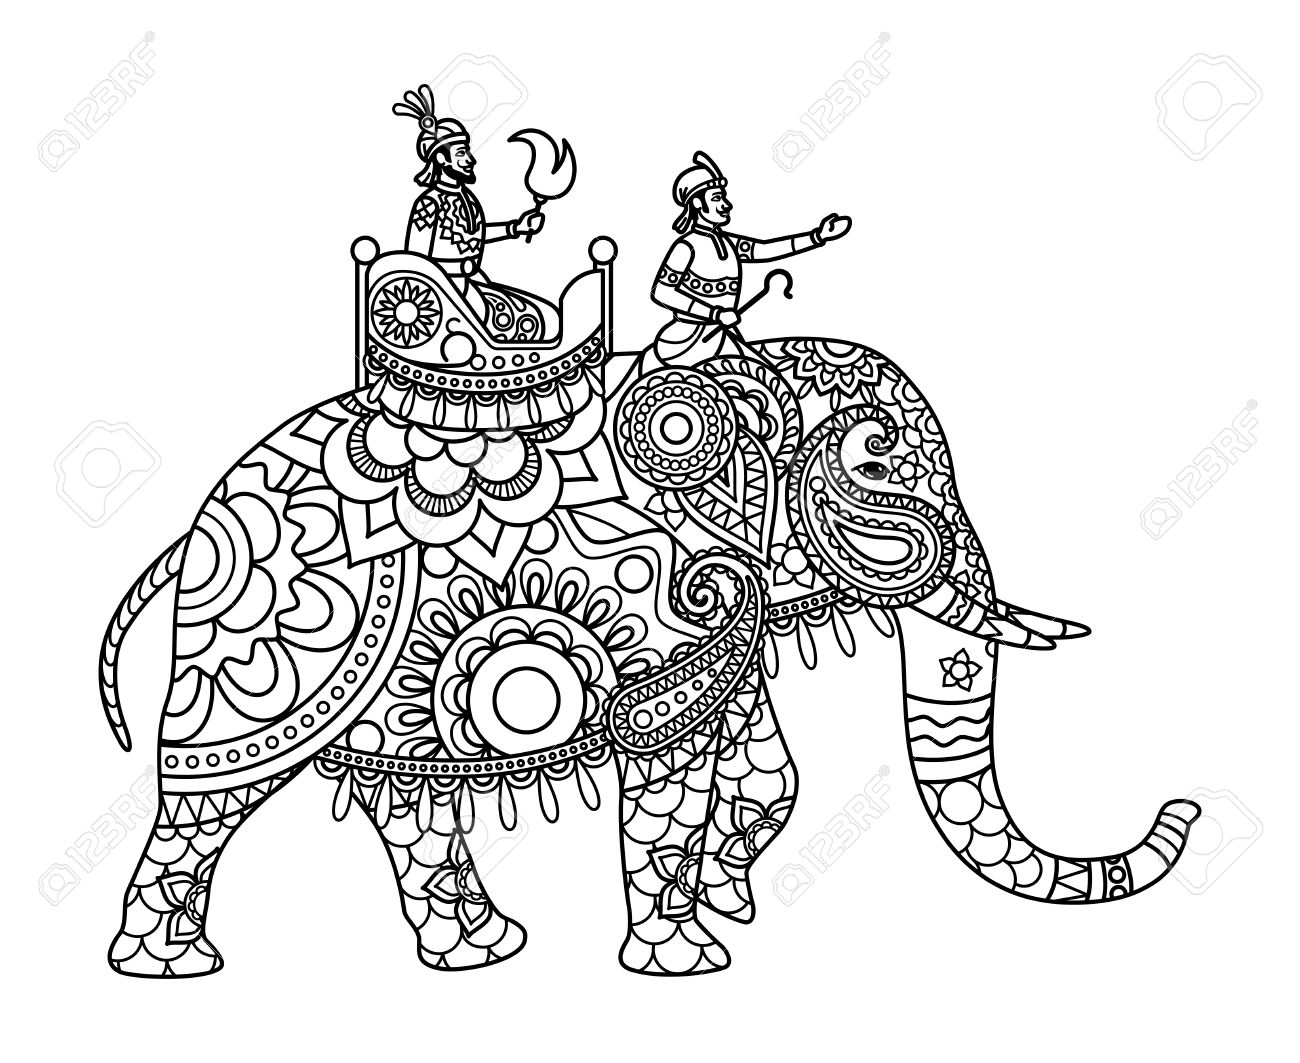 Indian Coloring Page - Free India Coloring Pages ... | 1063x1300